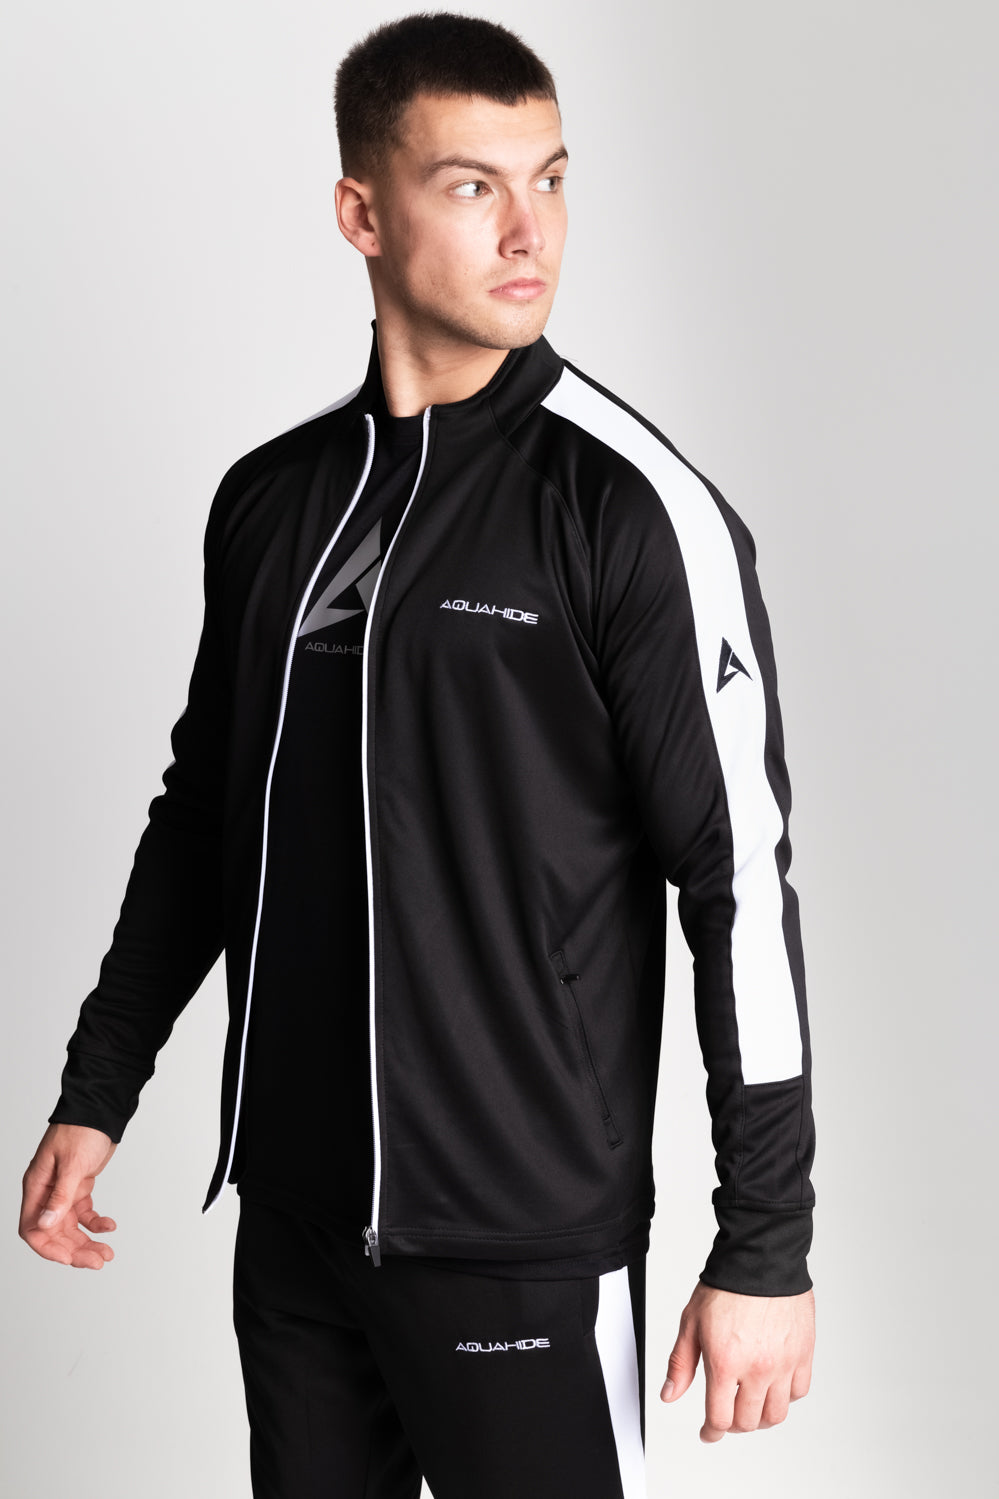 Urban Jacket - Black/White